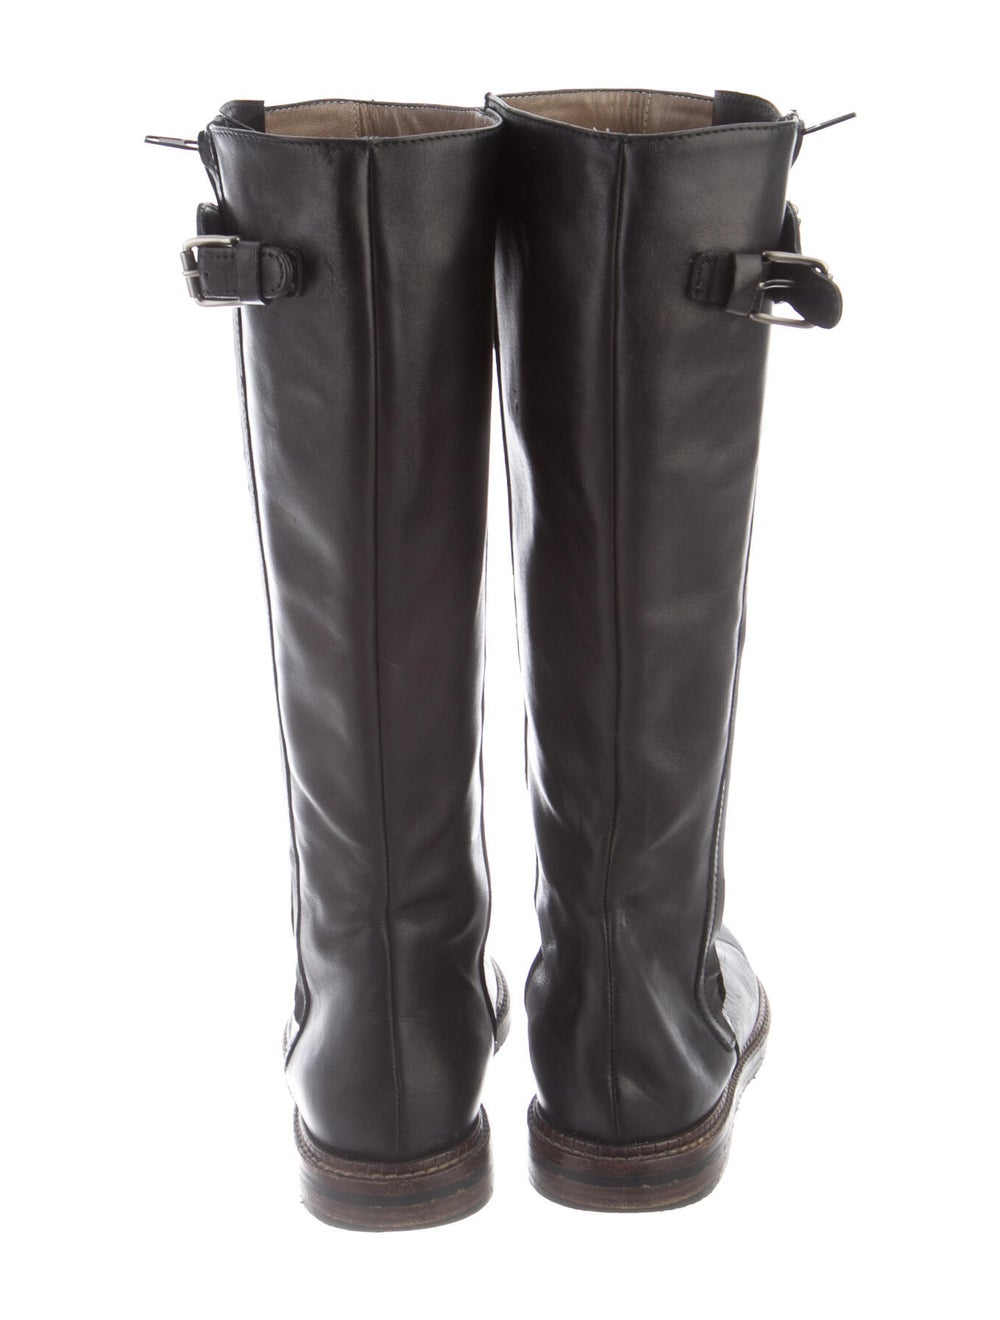 Marni Leather Riding Boots Black - image 4